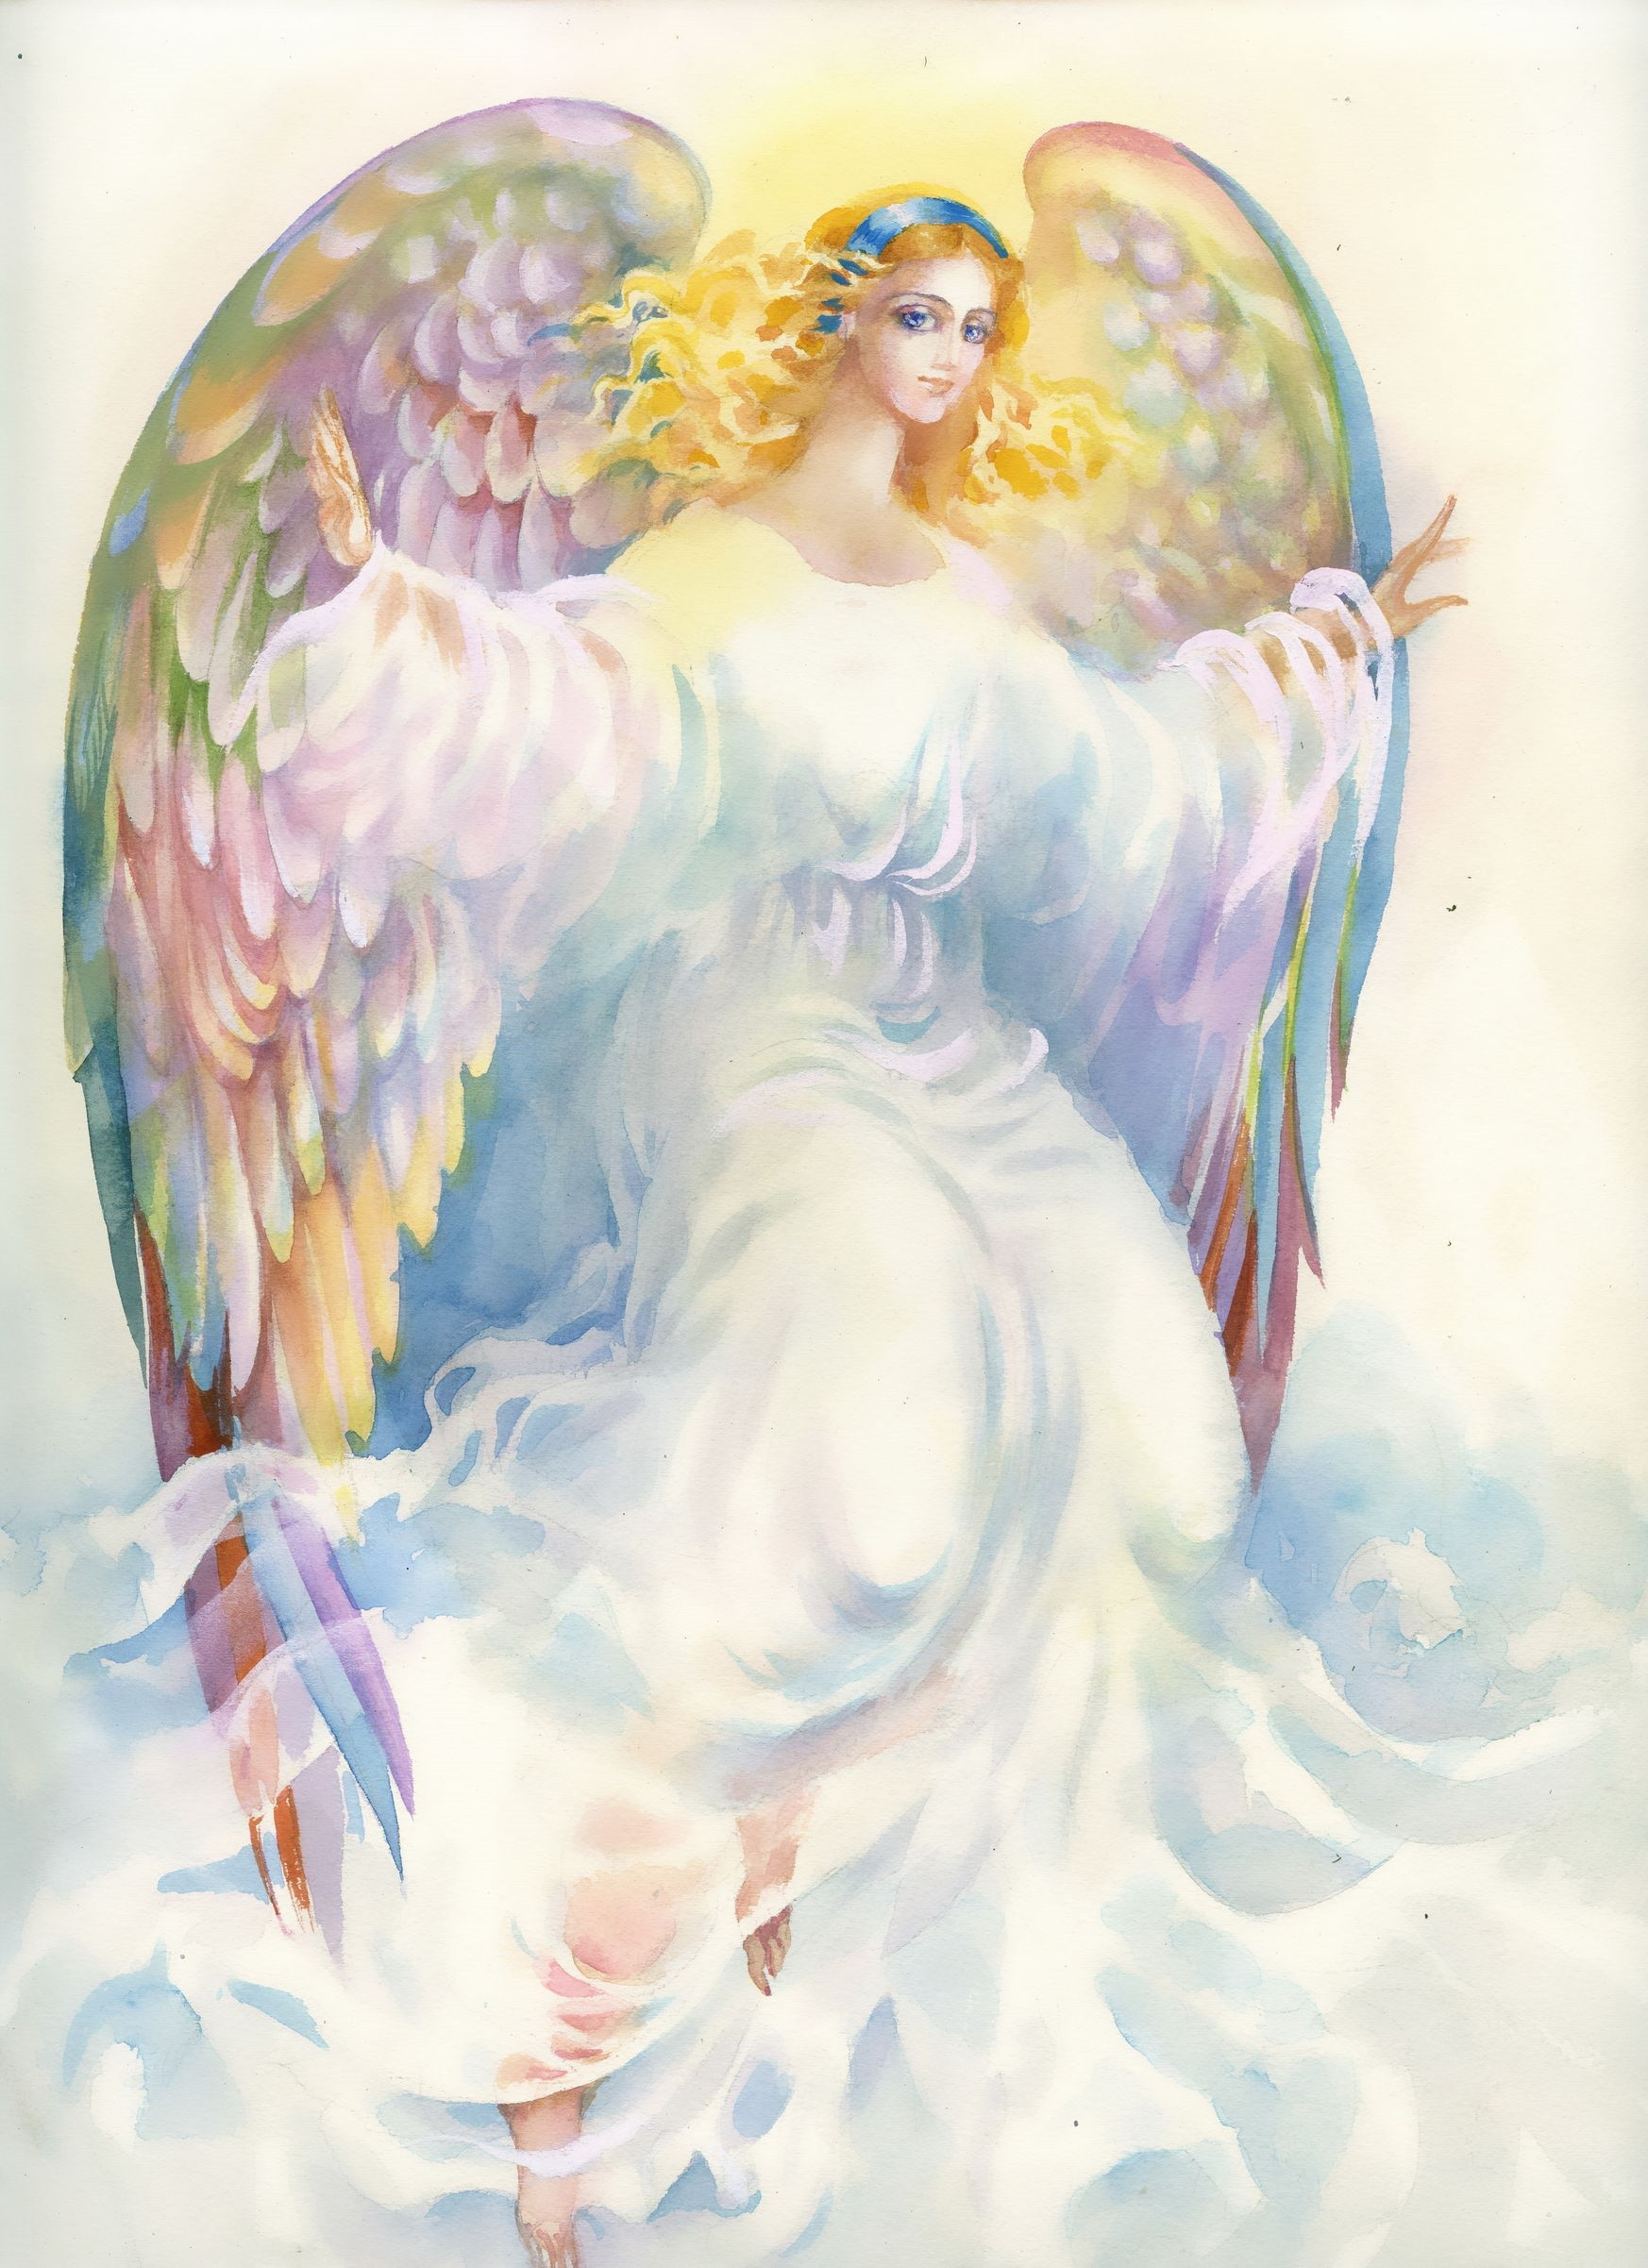 How To Connect With Your Guardian Angel In 7 Simple Steps